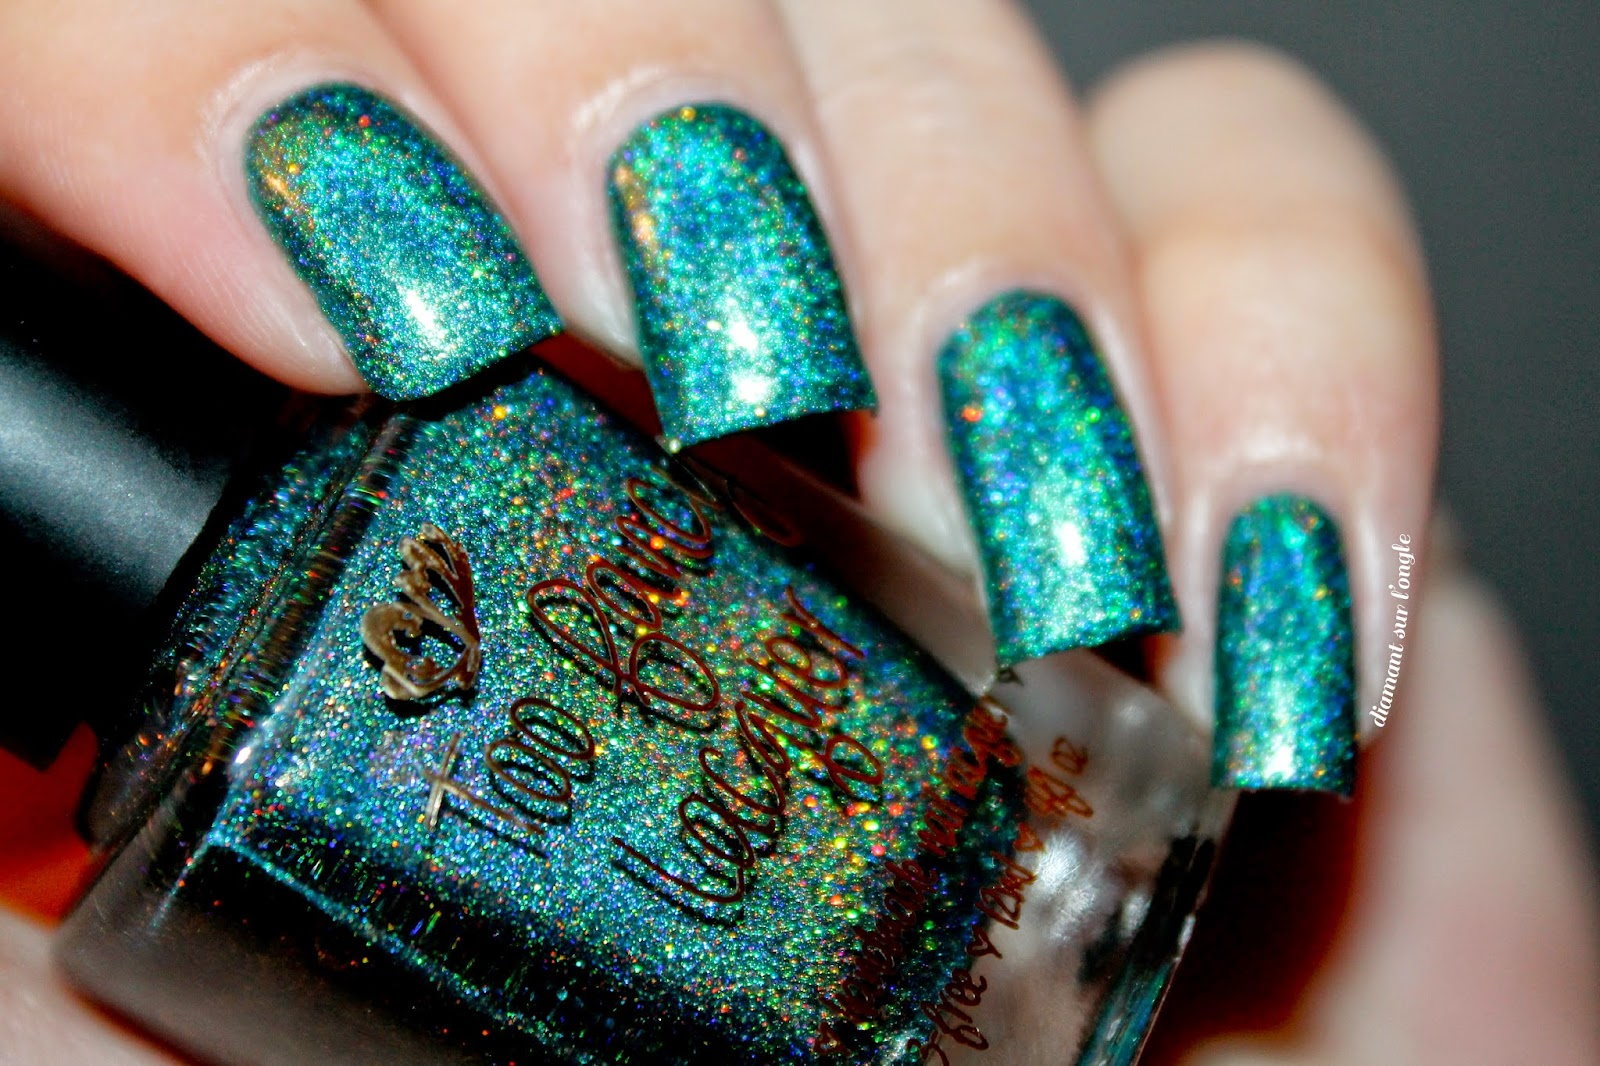 http://diamantsurlongle.blogspot.fr/2014/10/swatch-too-fancy-lacquer-buried-treasures.html